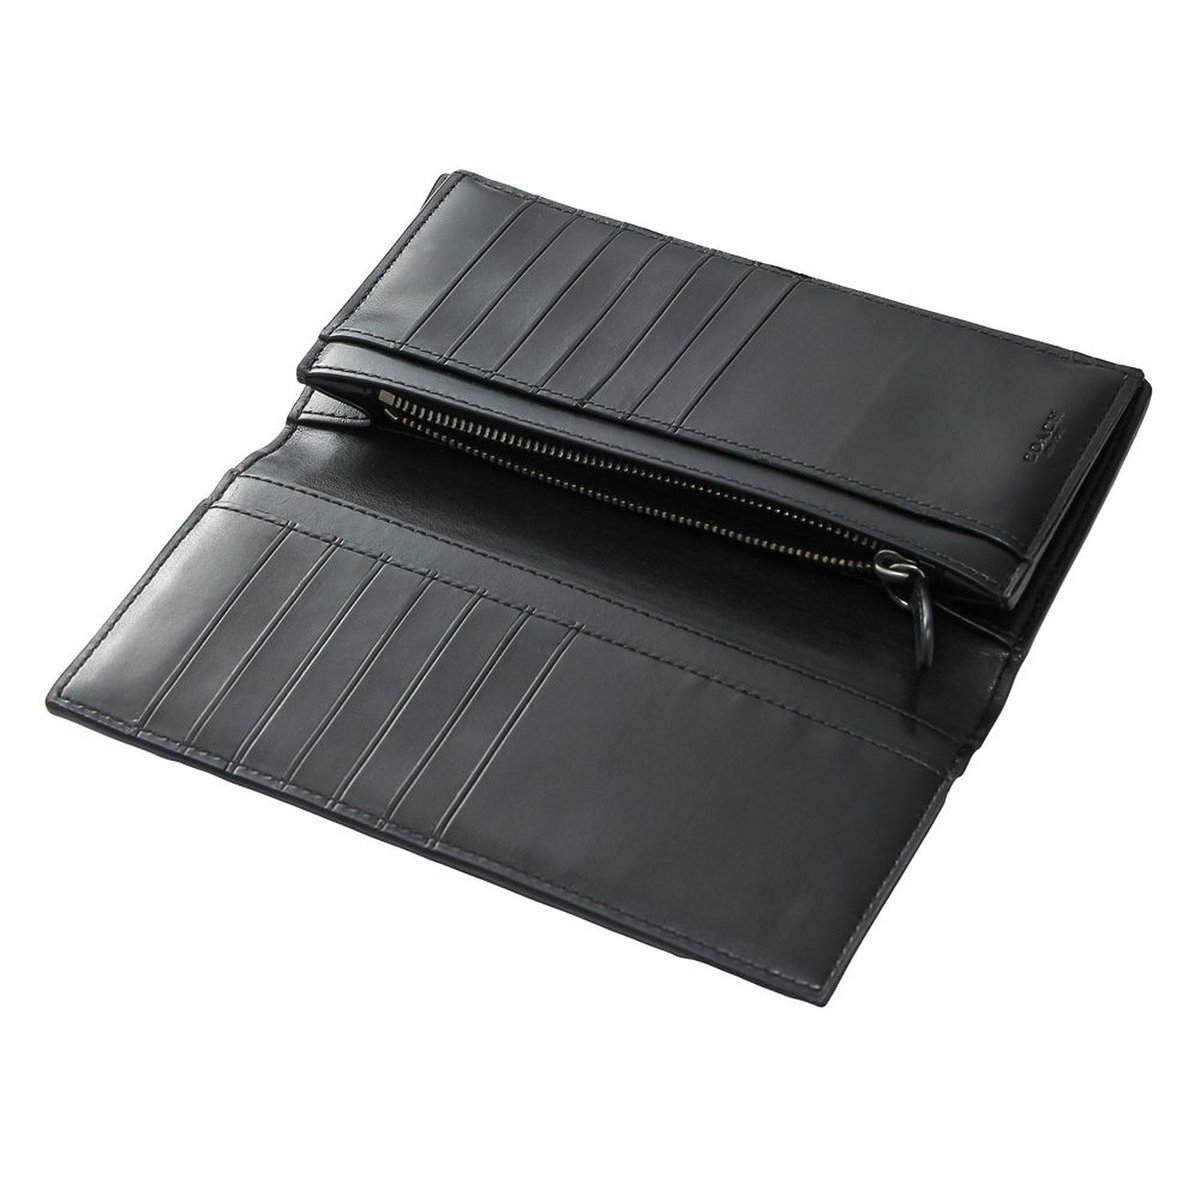 e0057a7c872db  Coach  Head COACH mens wallet F75013 charcoal   black signature PVC breast  pocket wallet  parallel import goods